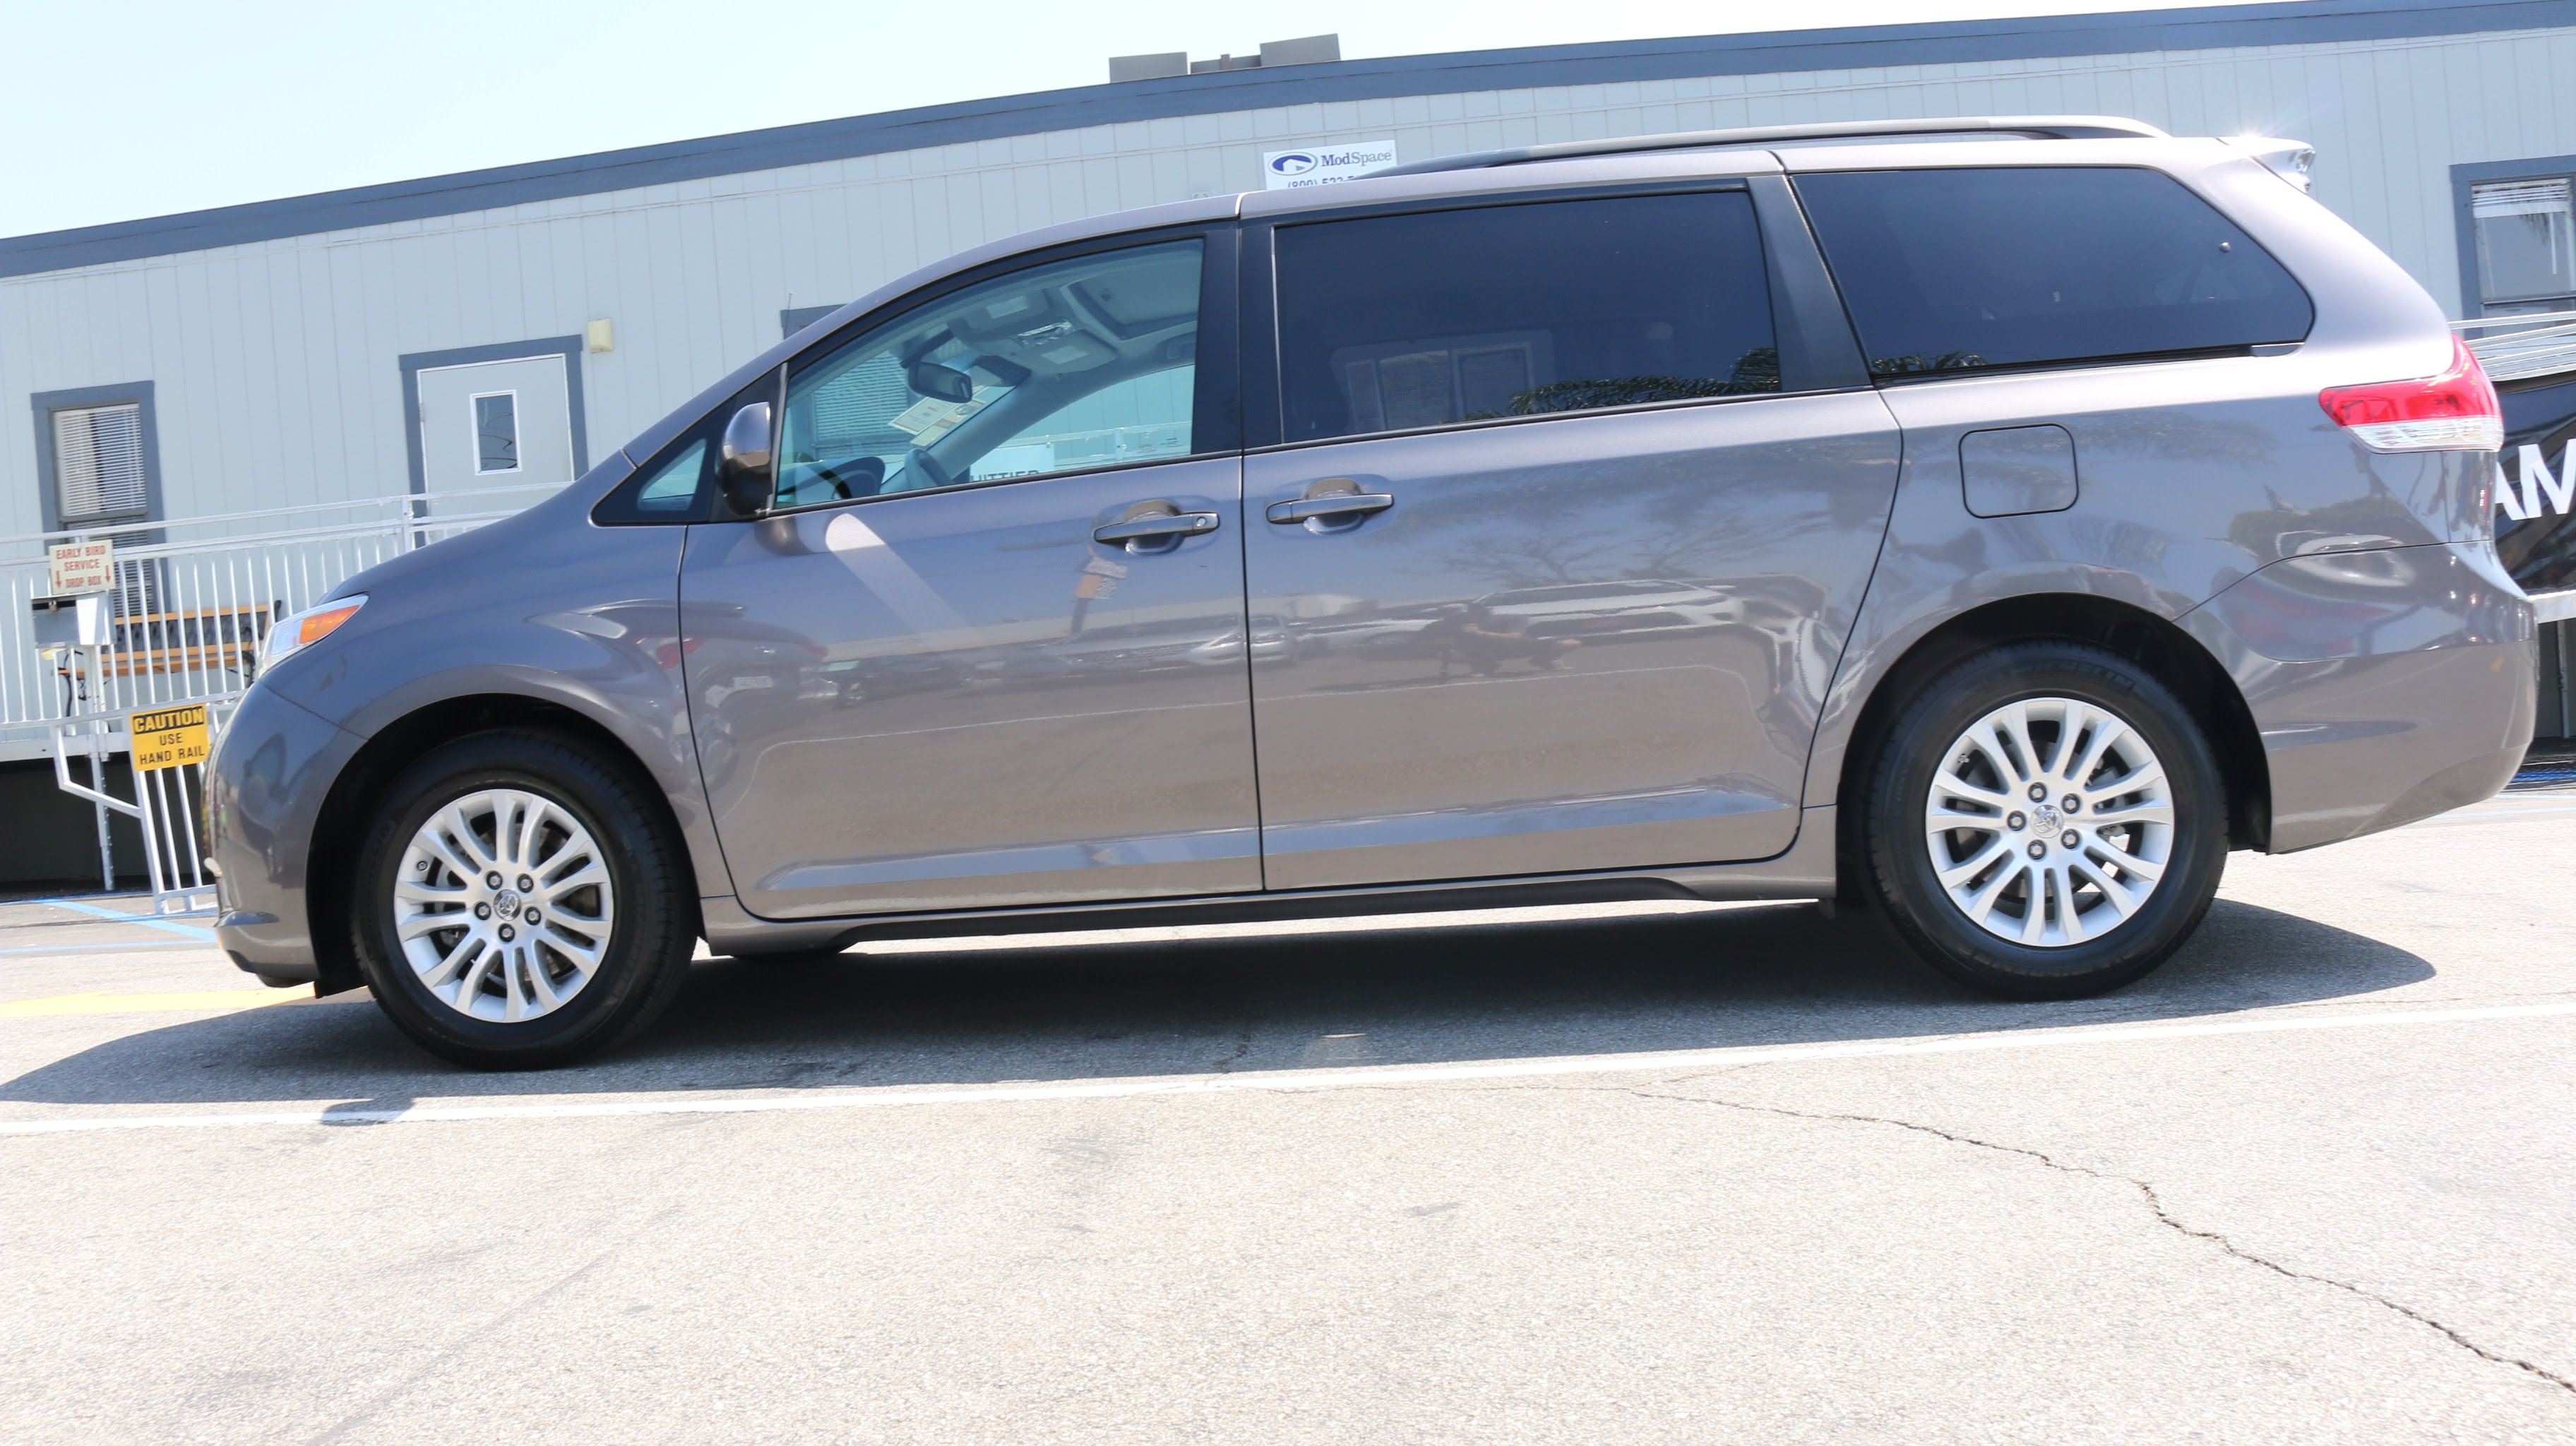 certified preowned 2013 gray toyota sienna xle used minivan toyota of whittier 888 718 3693 best youtube